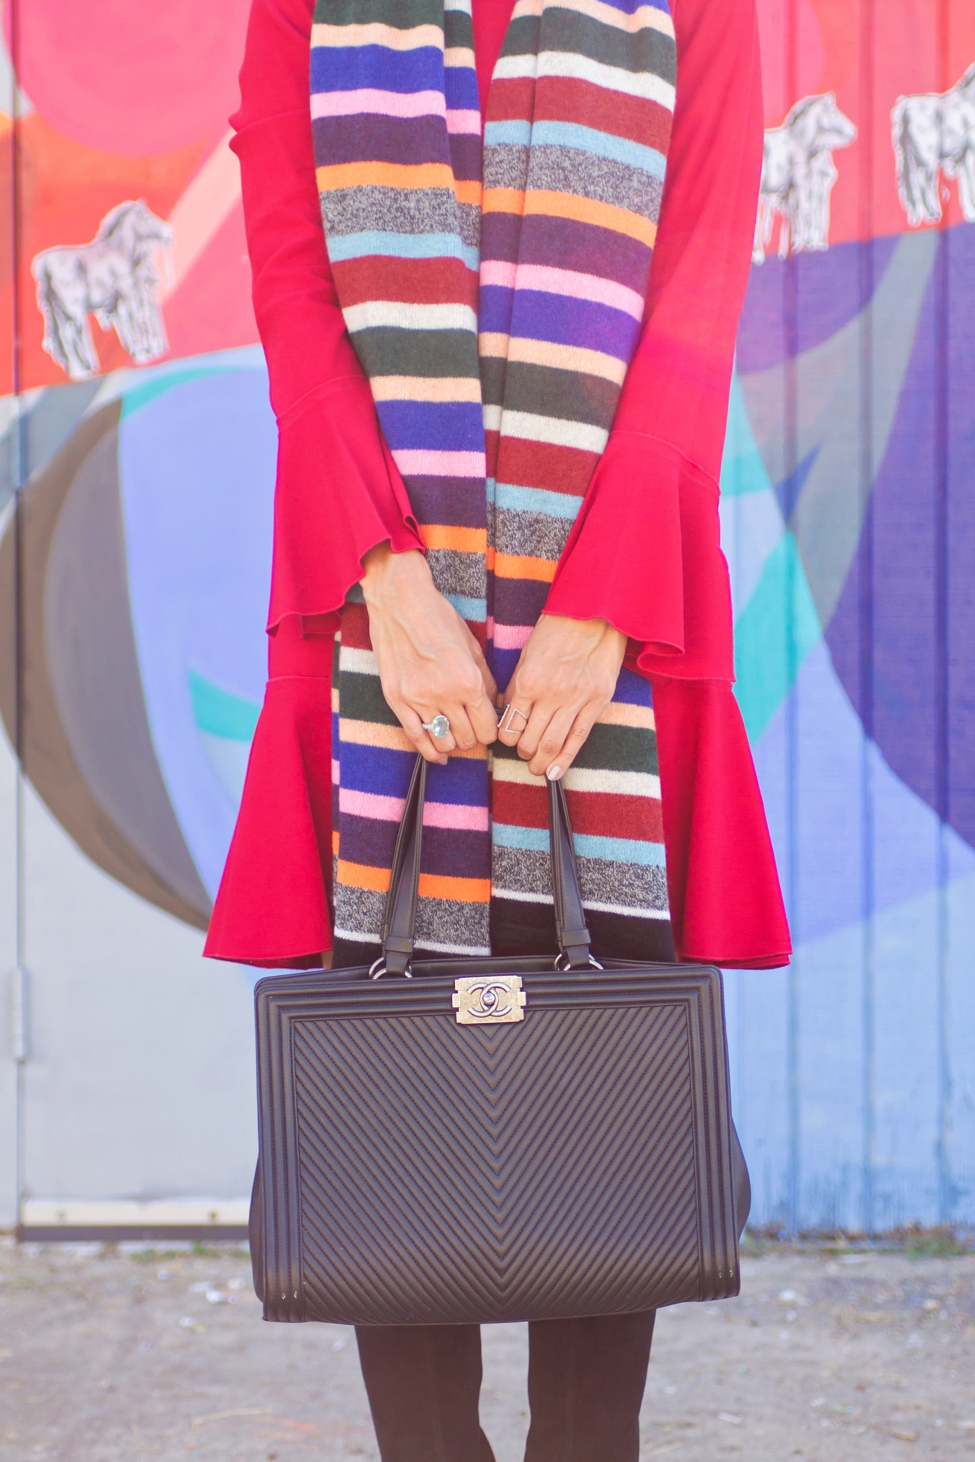 wear-where-well-theory-bell-sleeve-red-dress-colorful-striped-scarf_0015